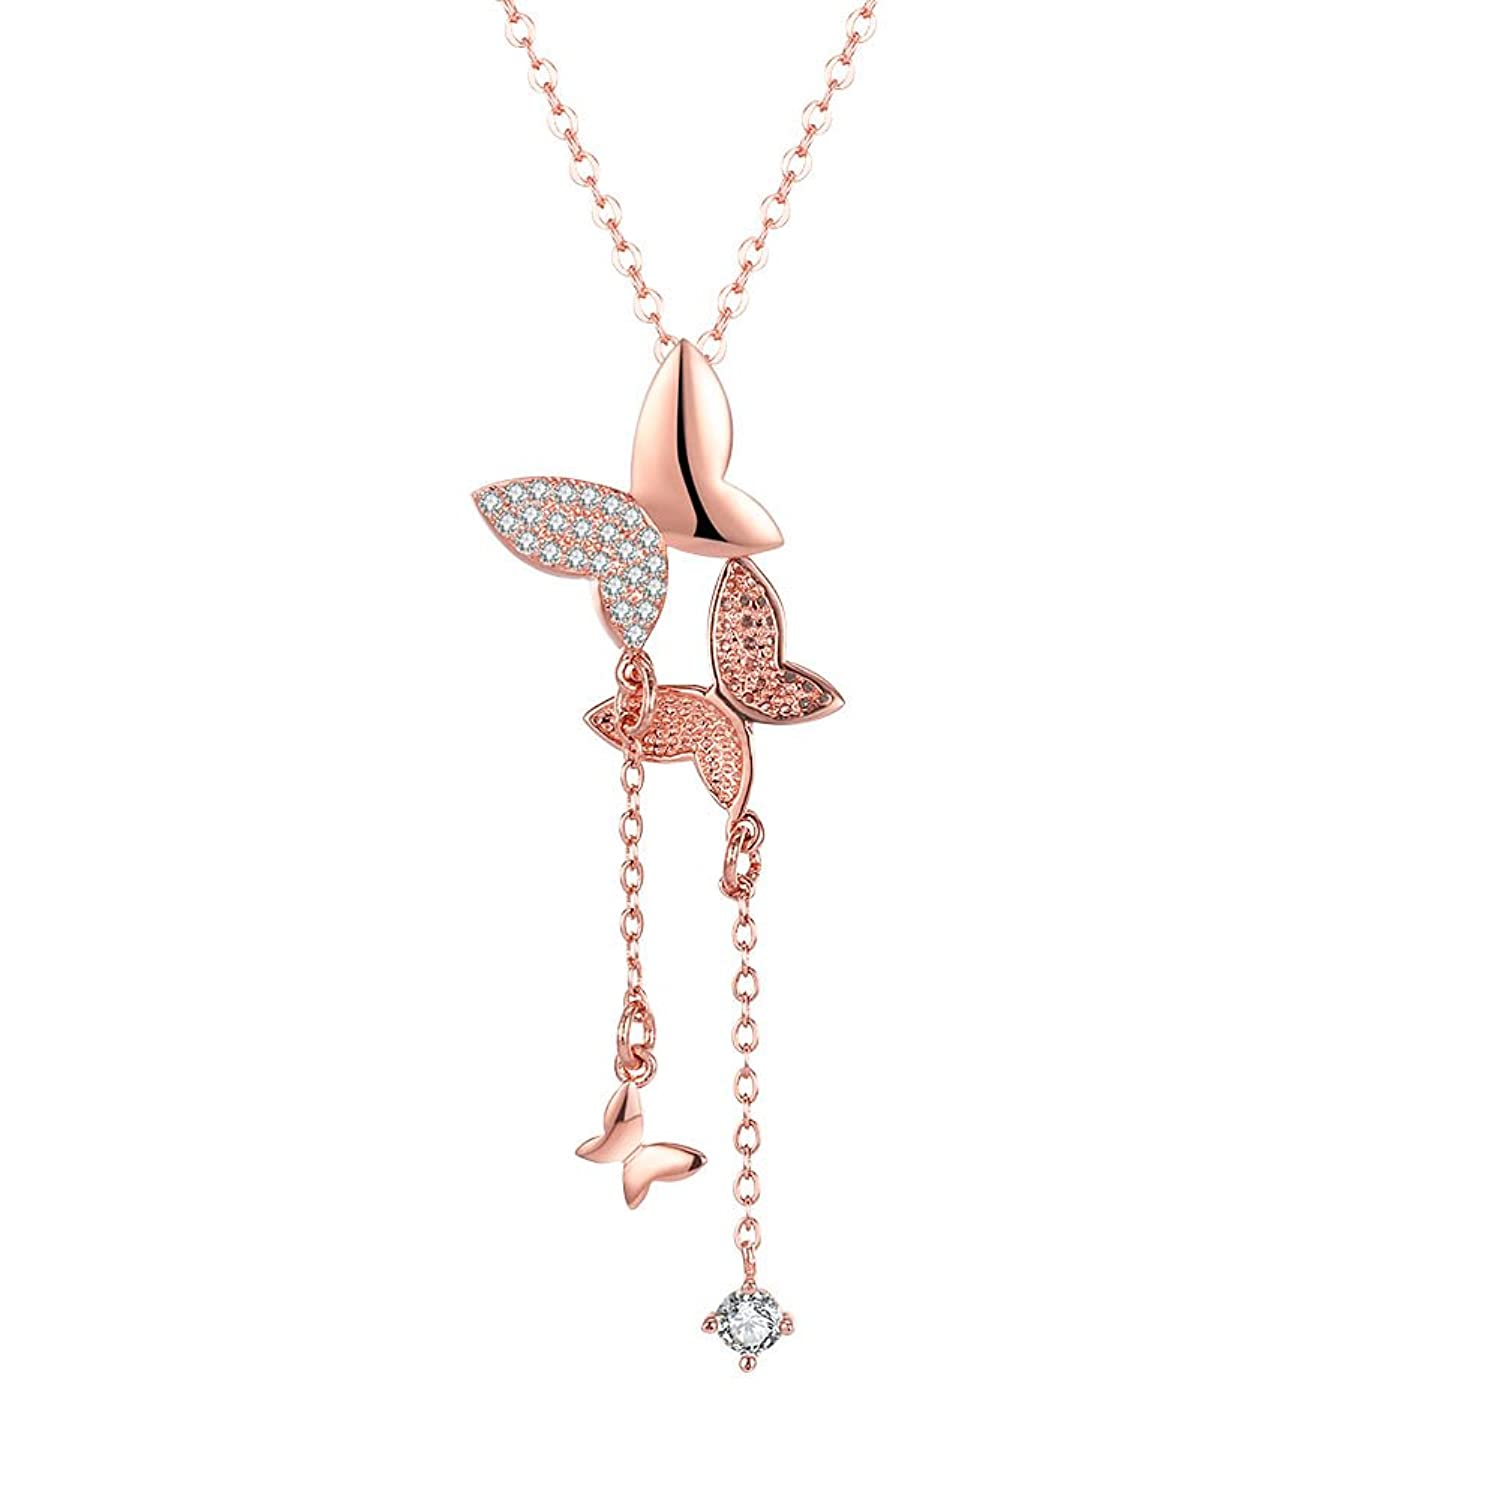 Necklaces for Women | Buy Necklaces, Pendants Online at Low Prices ...